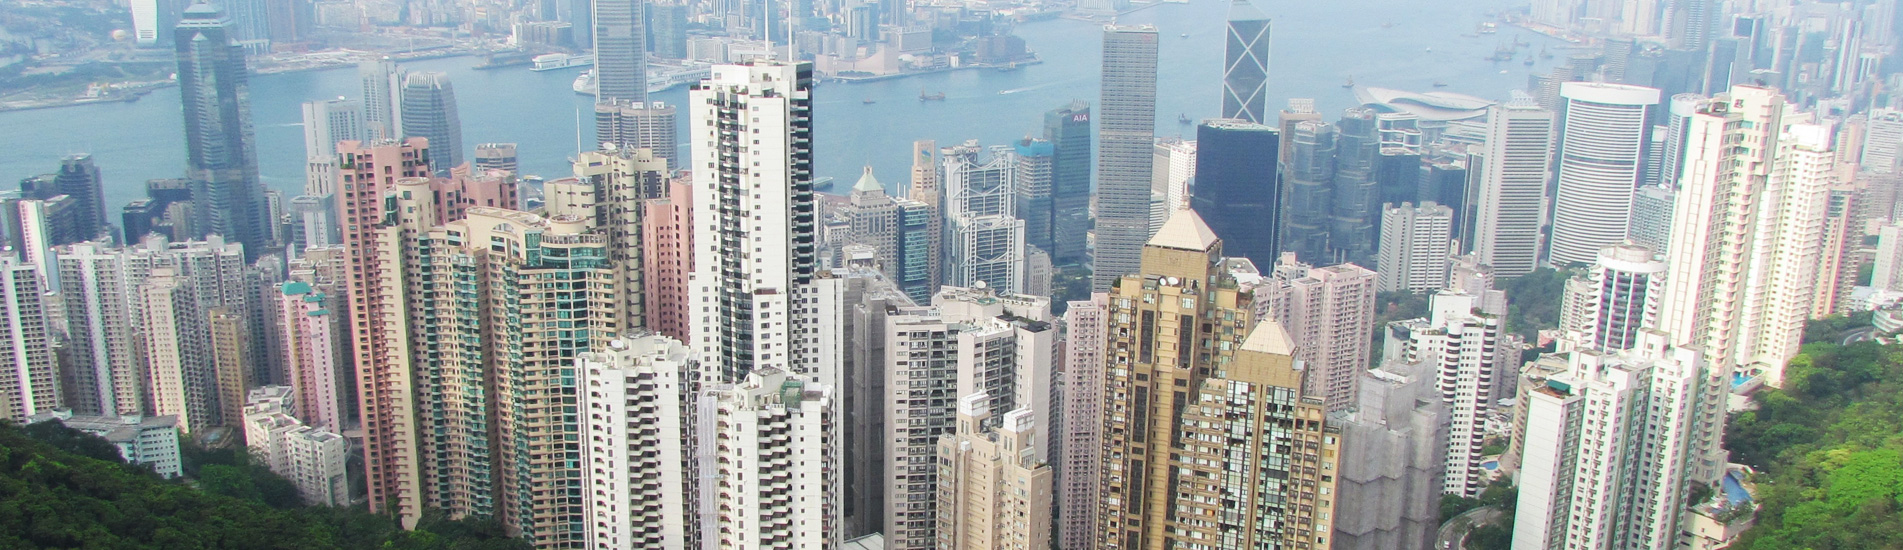 the skyscrapers in Hong Kong